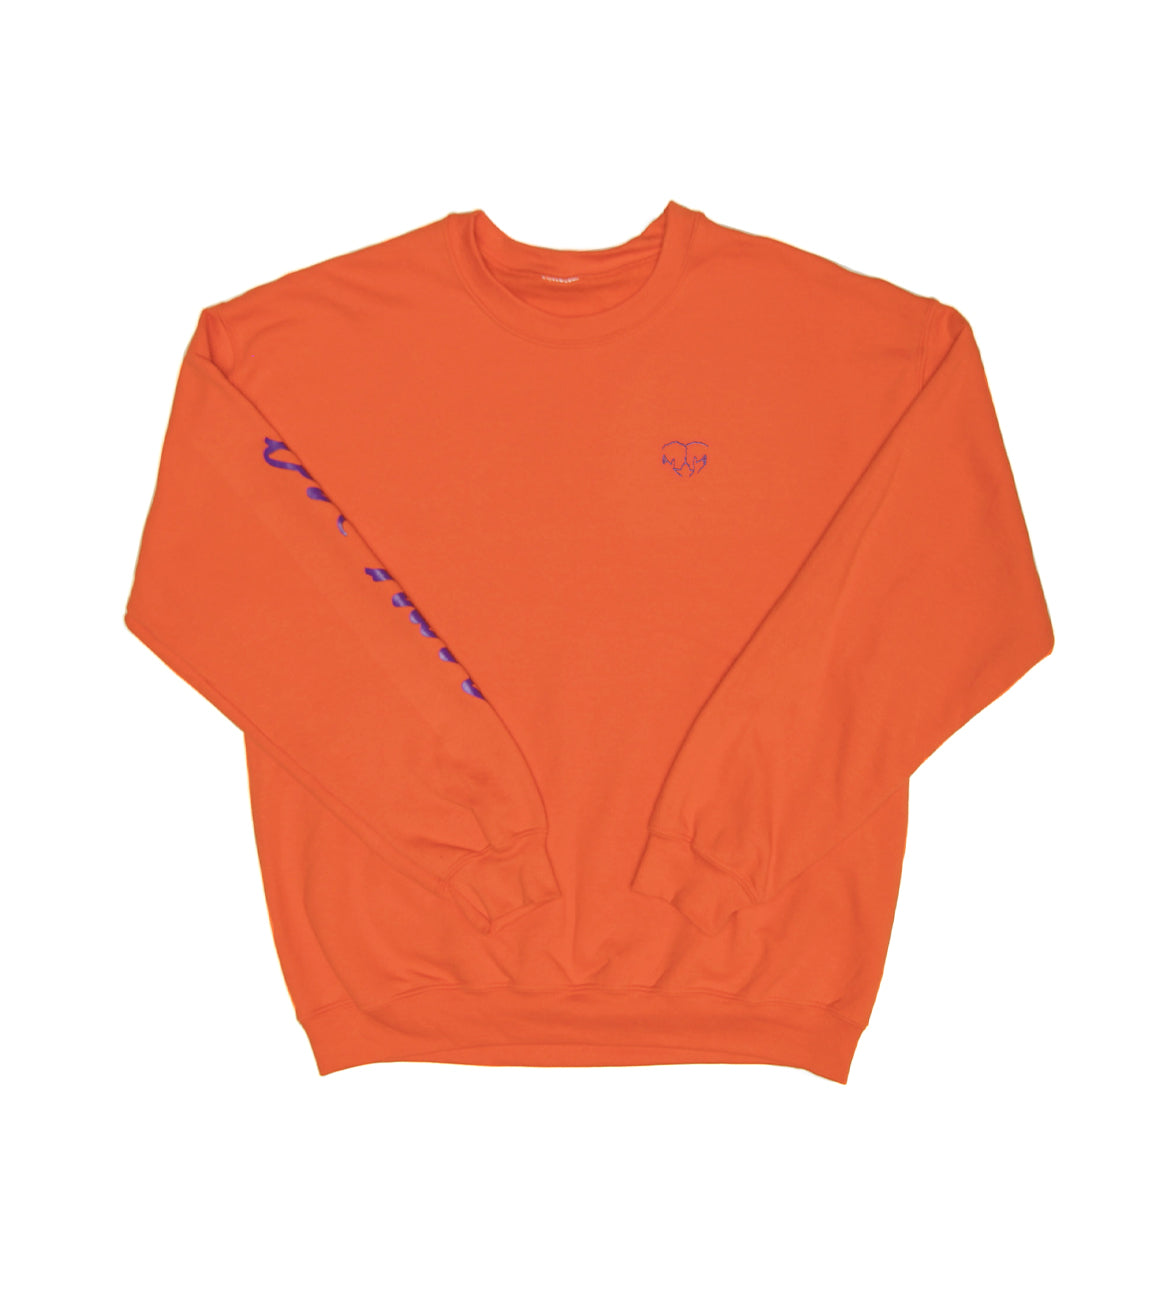 LOVE HURTS CREWNECK SWEATSHIRT ORANGE